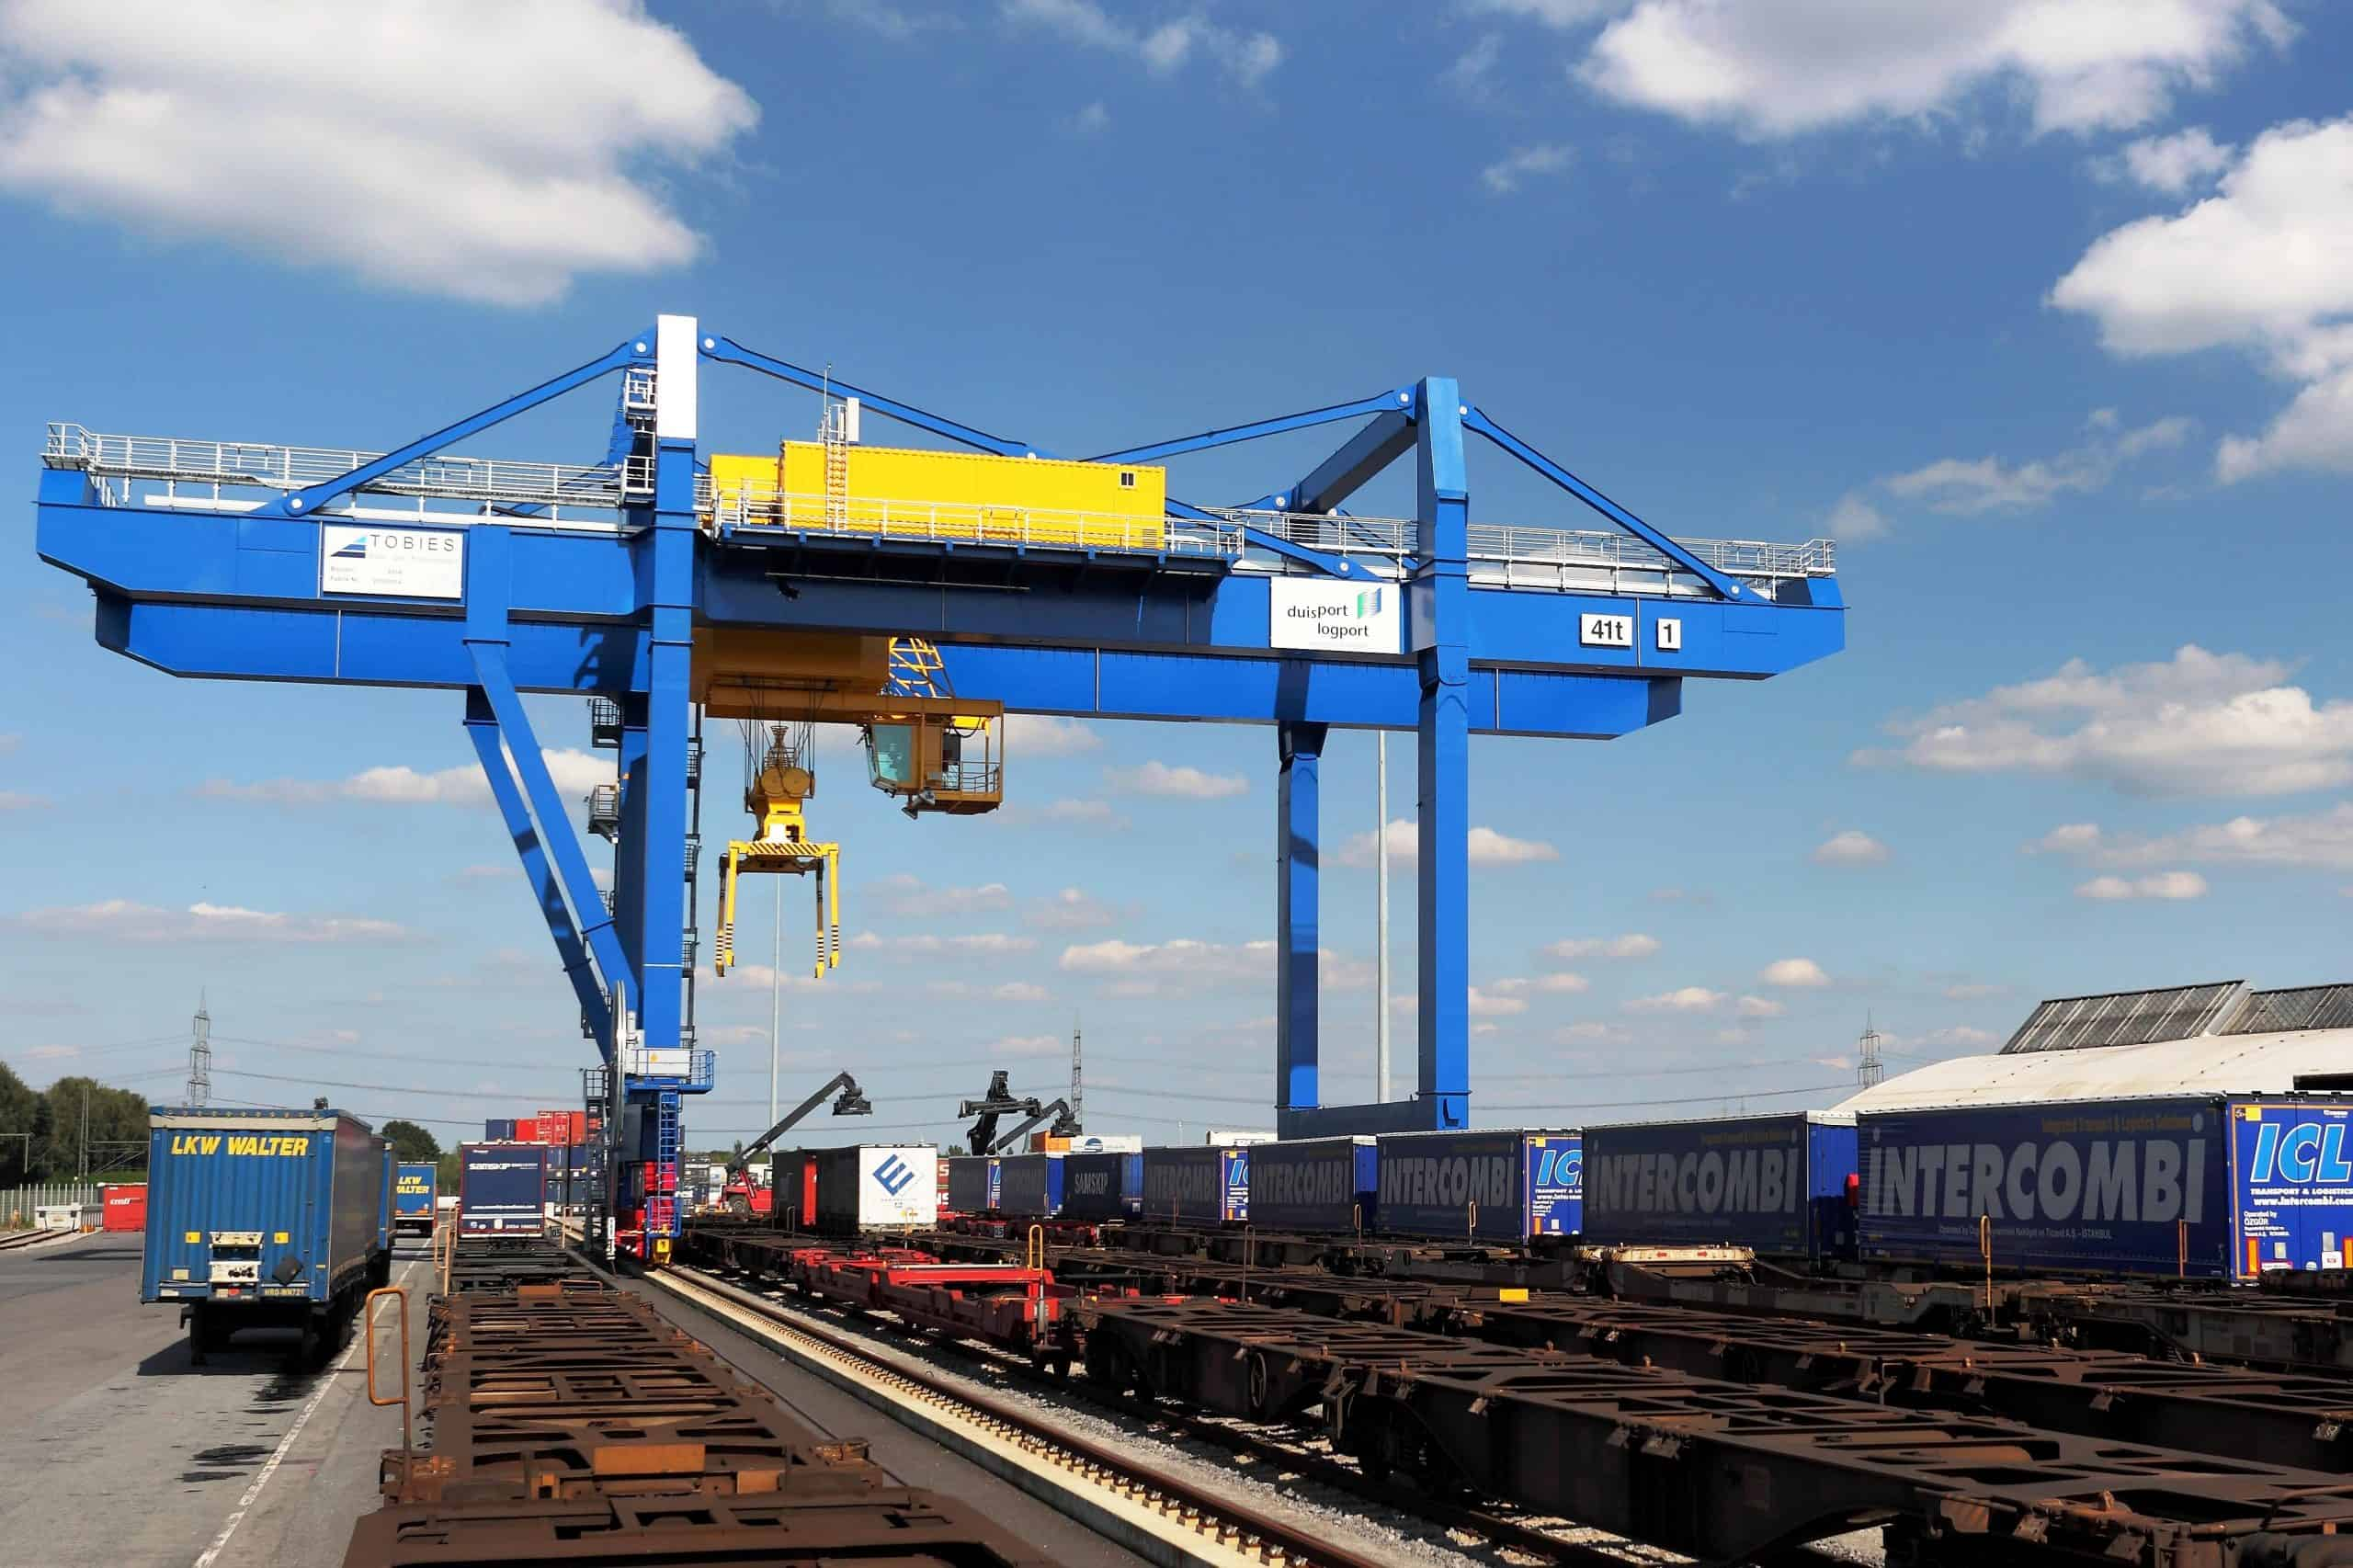 New railway crane in operation at Port of Duisburg